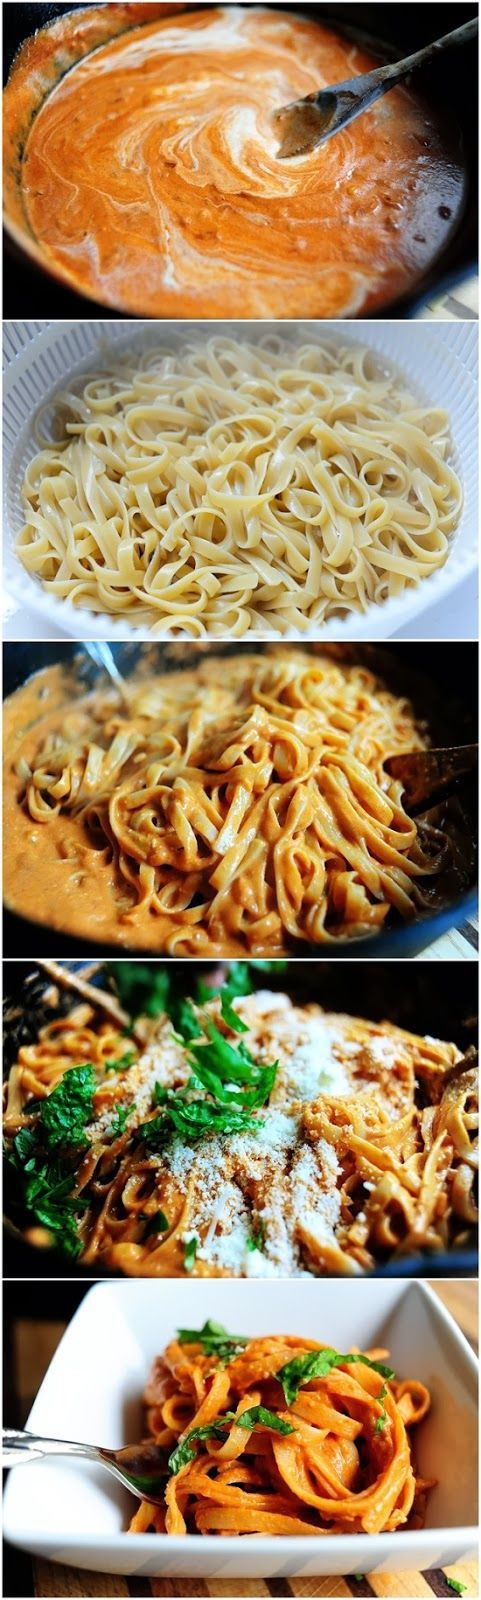 Pasta with Tomato Cream Sauce ~ The Pioneer Woman. There's really nothing better in the entire world than a fresh thick sauce for pasta. Of course you can use a jar of sauce bought in a store, but the homemade one is also as easy. Plus benefits: you can add extra ingredients you like to your own pasta